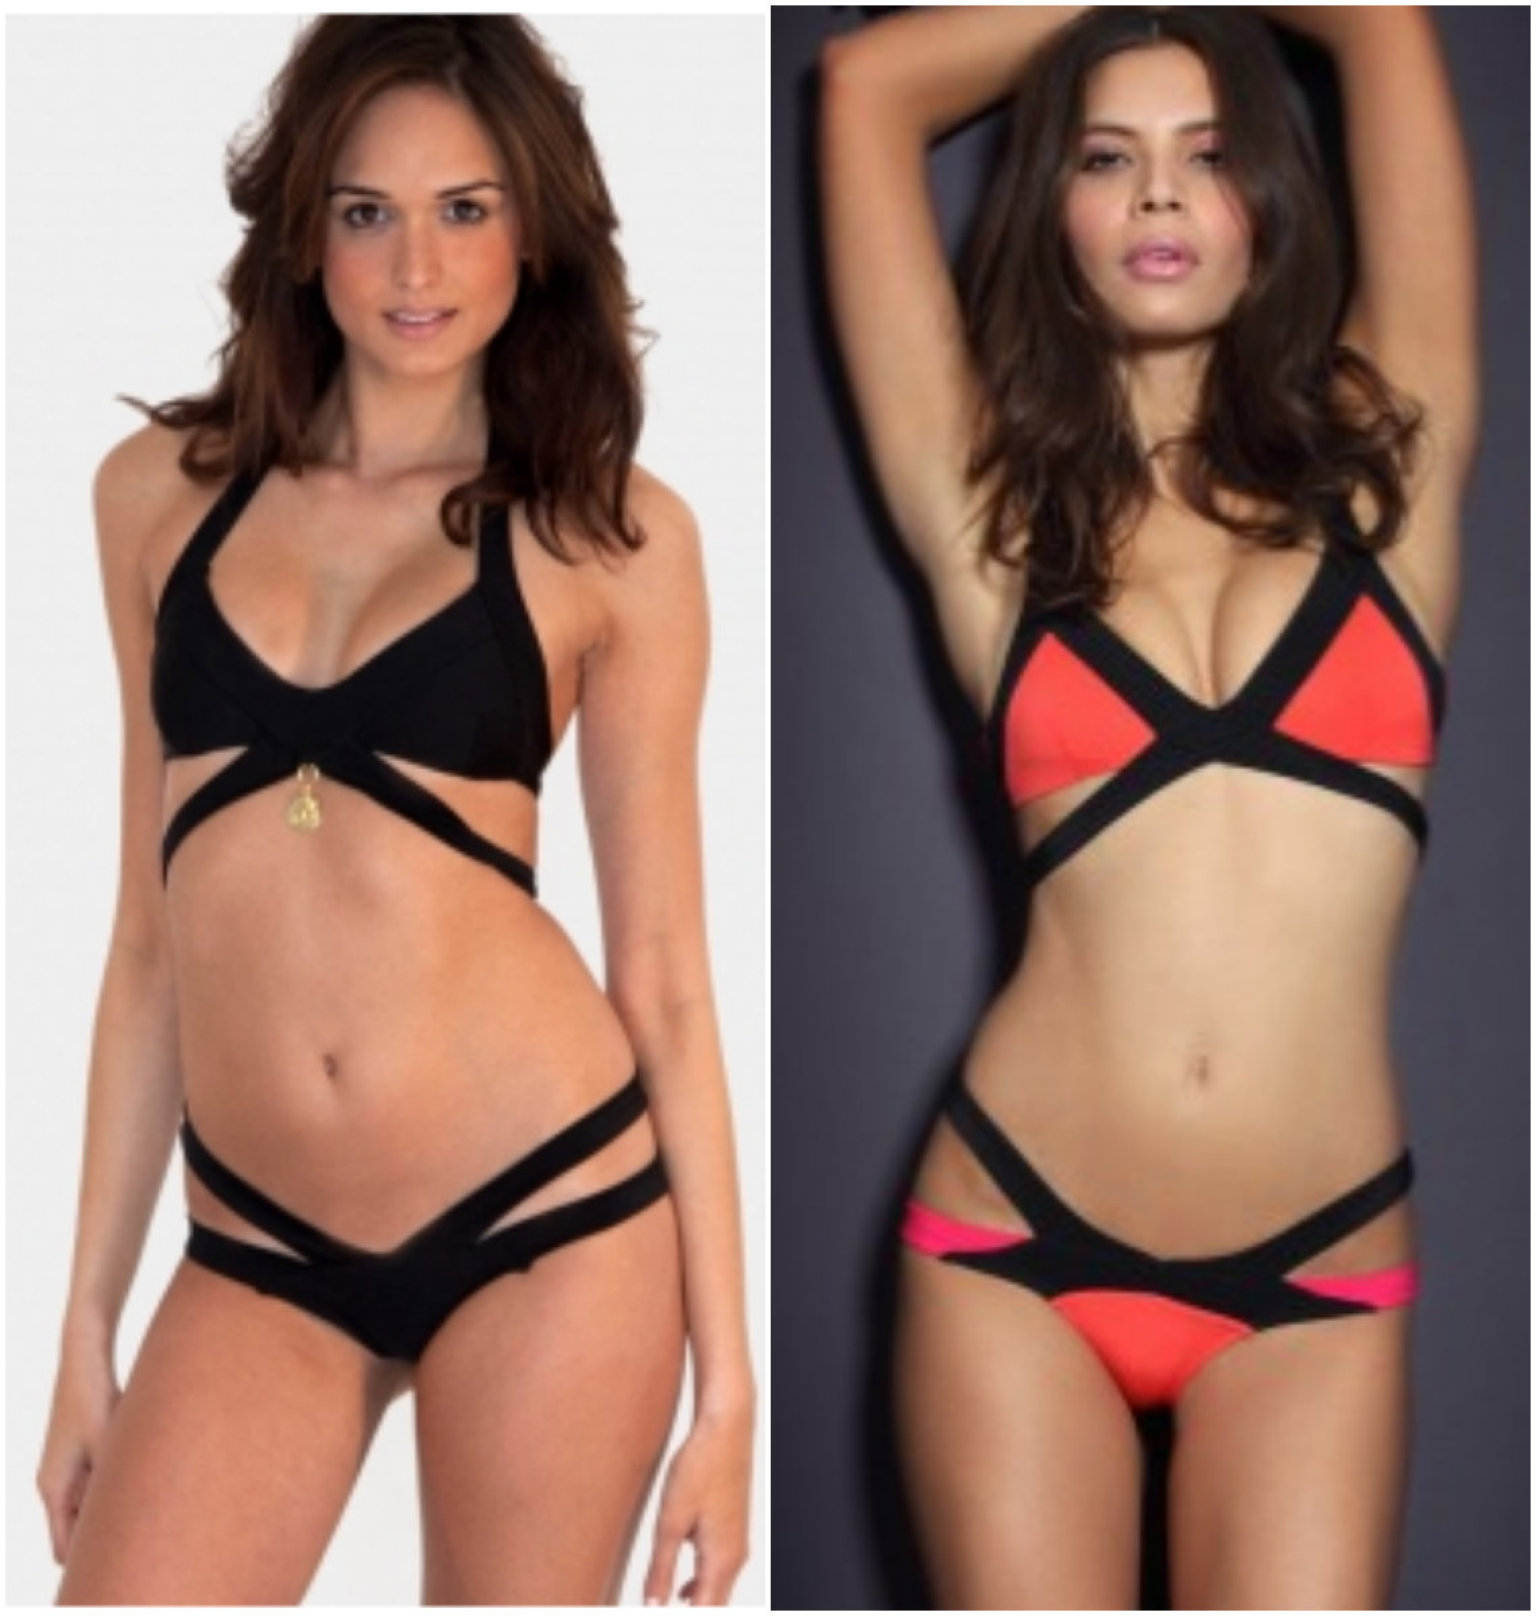 agent provocateur sues kimberley london for copycat bikini photos huffpost. Black Bedroom Furniture Sets. Home Design Ideas